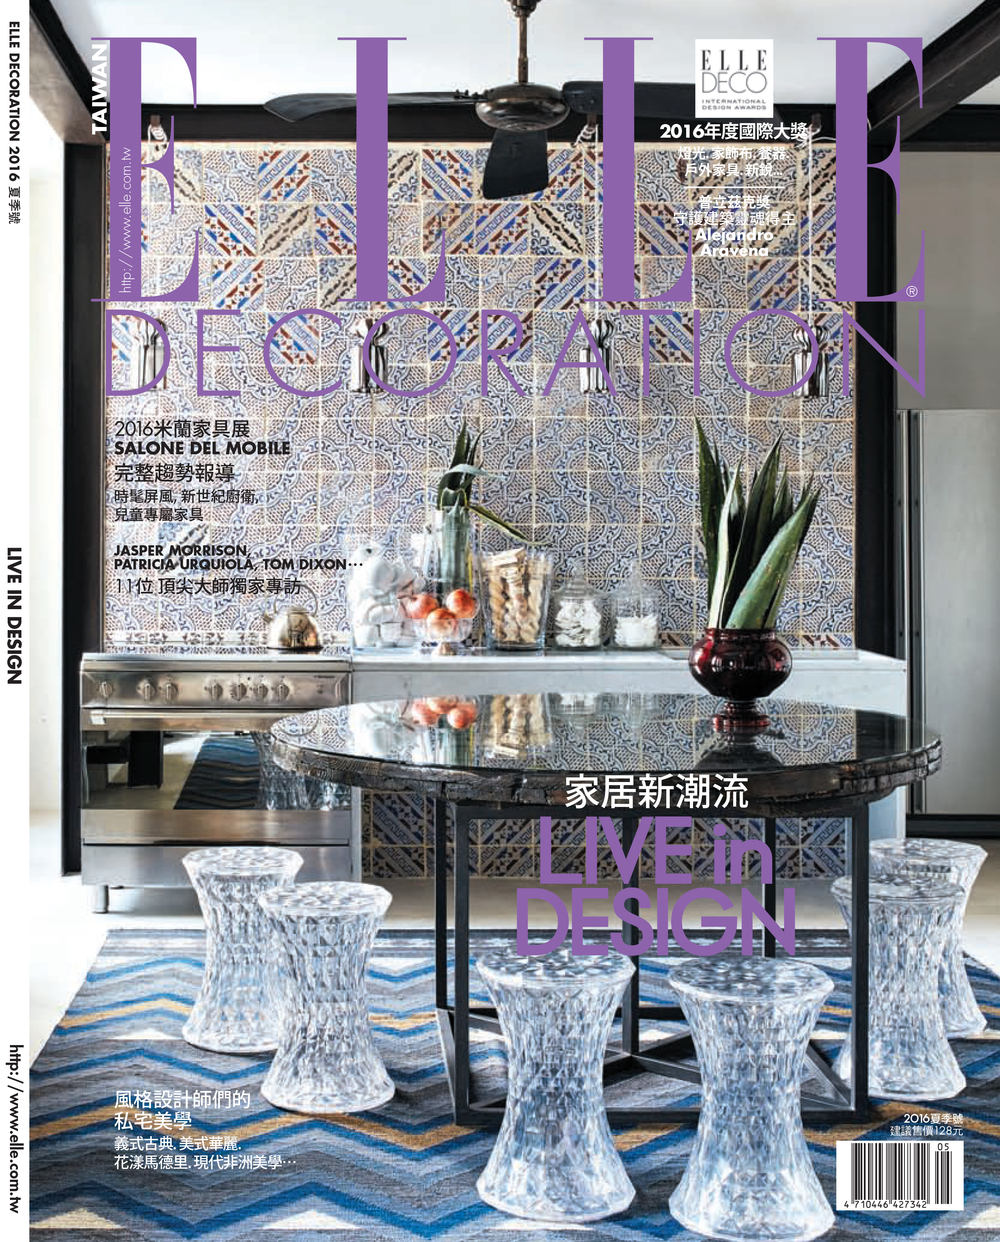 ELLE DECORATION 2016年5月夏季號-1.jpg